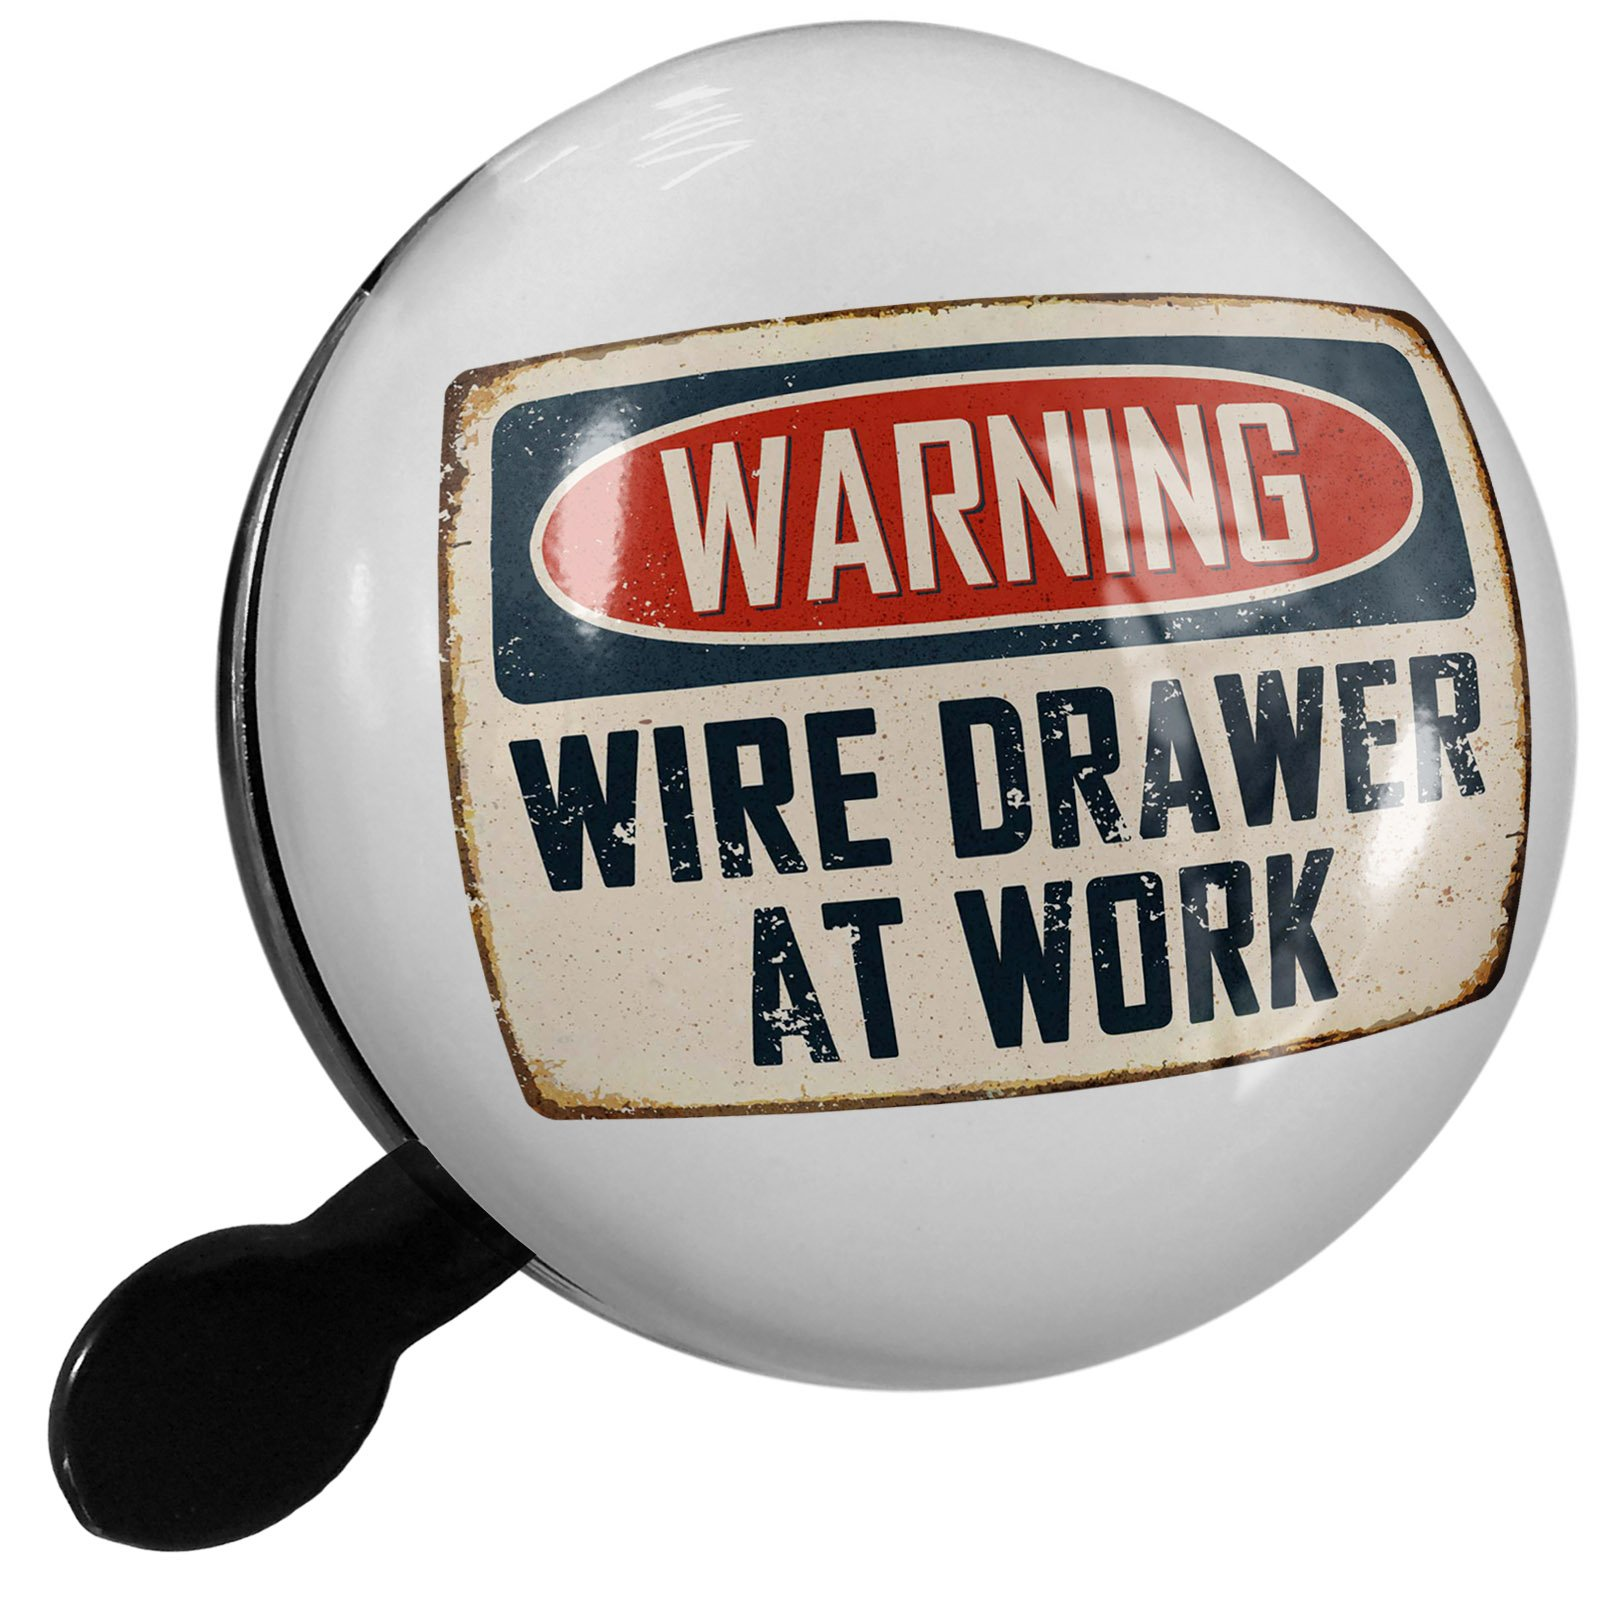 Small Bike Bell Warning Wire Drawer At Work Vintage Fun Job Sign - NEONBLOND